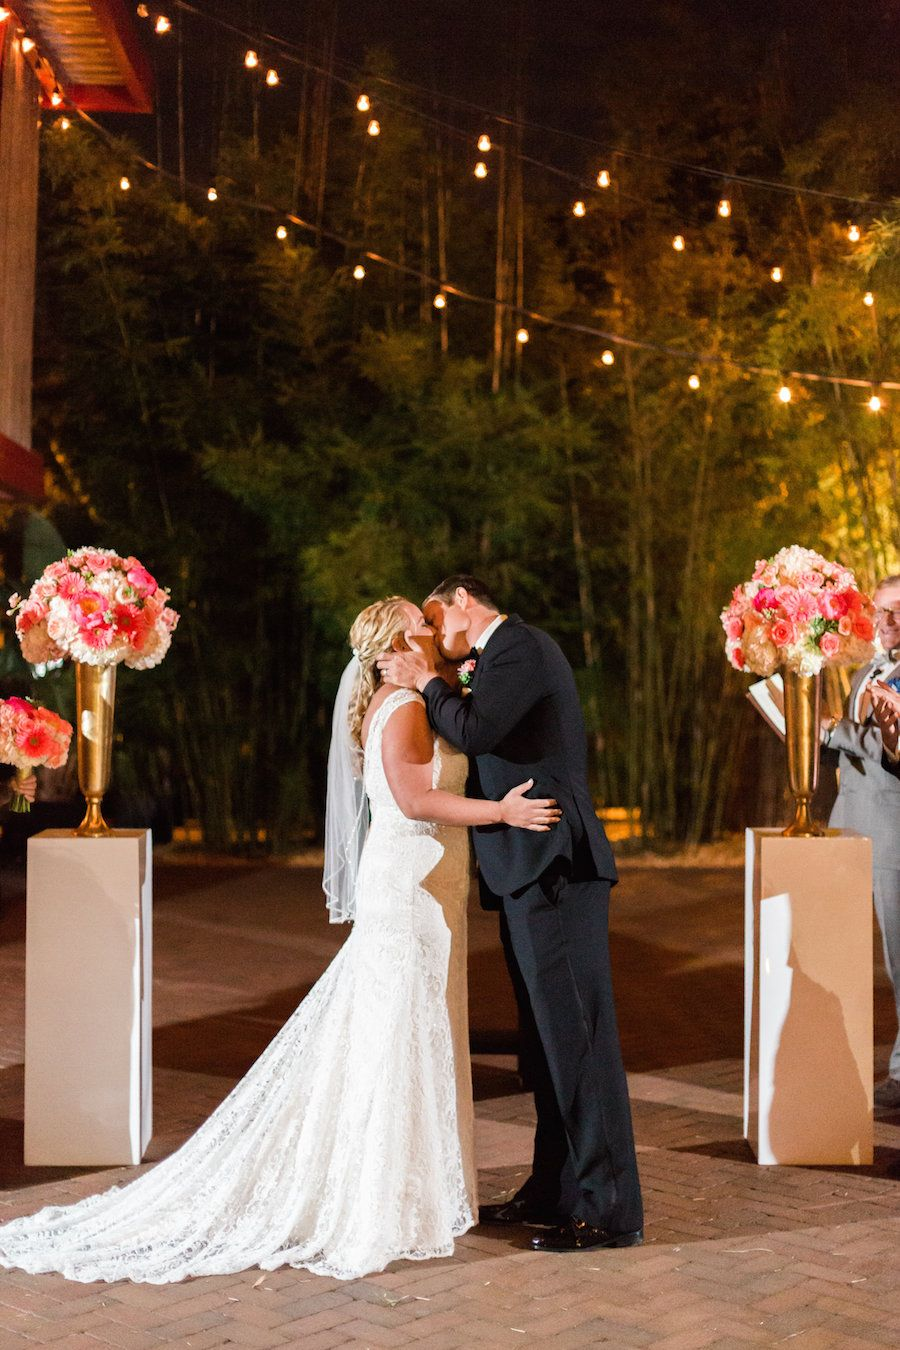 Outdoor, St Pete Wedding Ceremony, Bride and Groom First Kiss Portrait| St. Pete Wedding and Event Space NOVA 535